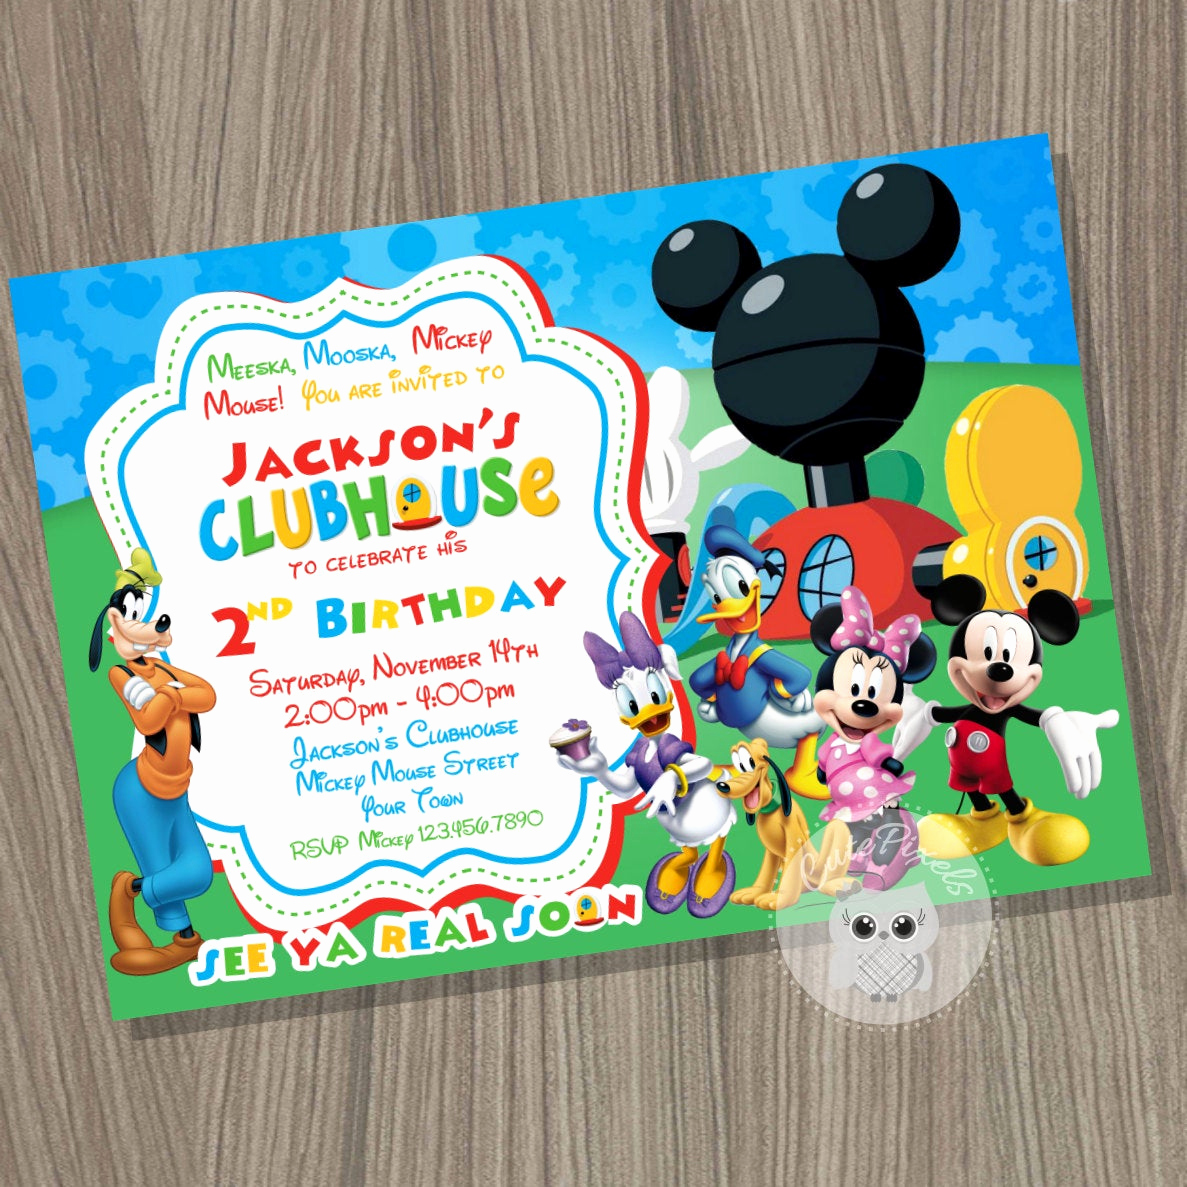 Mickey Mouse Clubhouse Invitations Fresh Mickey Mouse Clubhouse Invitation Mickey Mouse by Cute